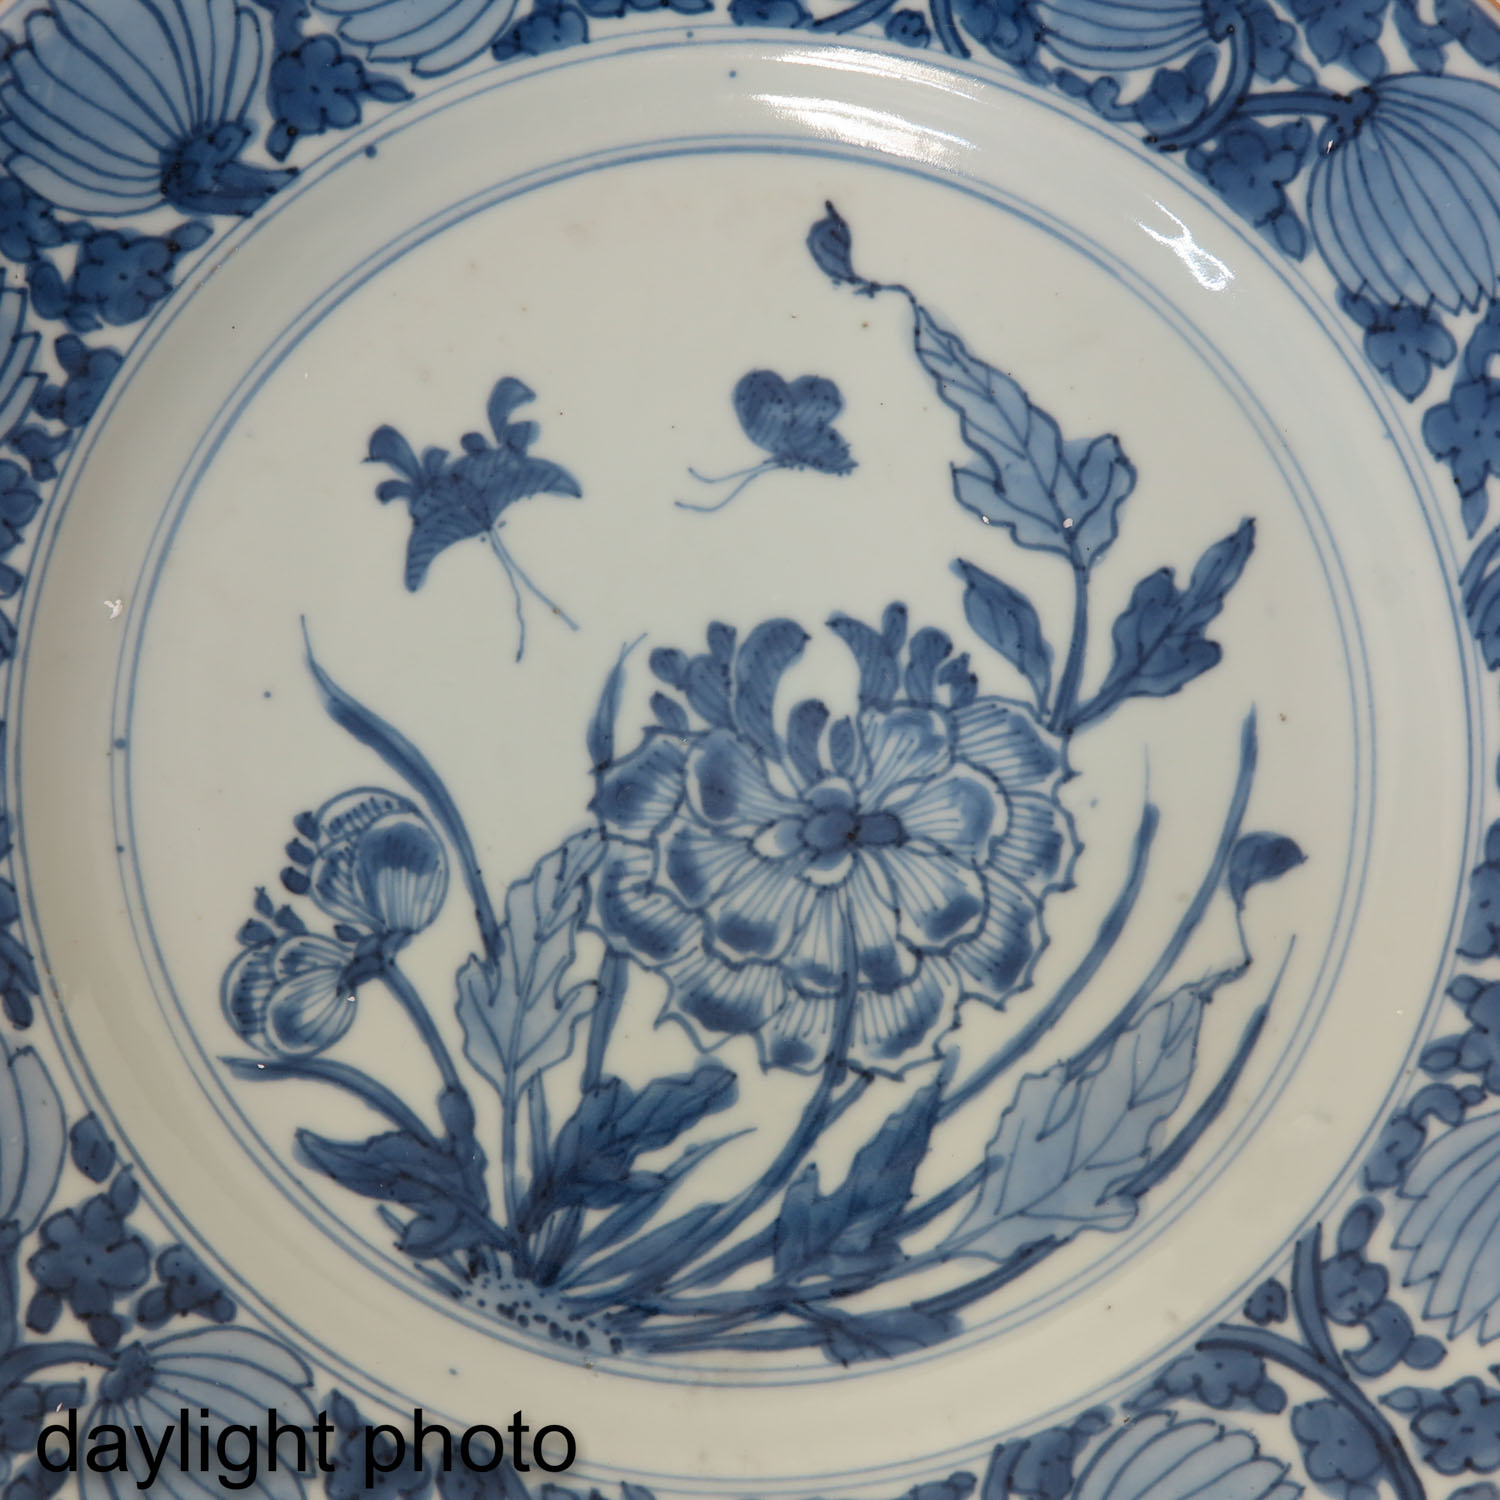 A Series of 5 Blue and White Plates - Image 10 of 10